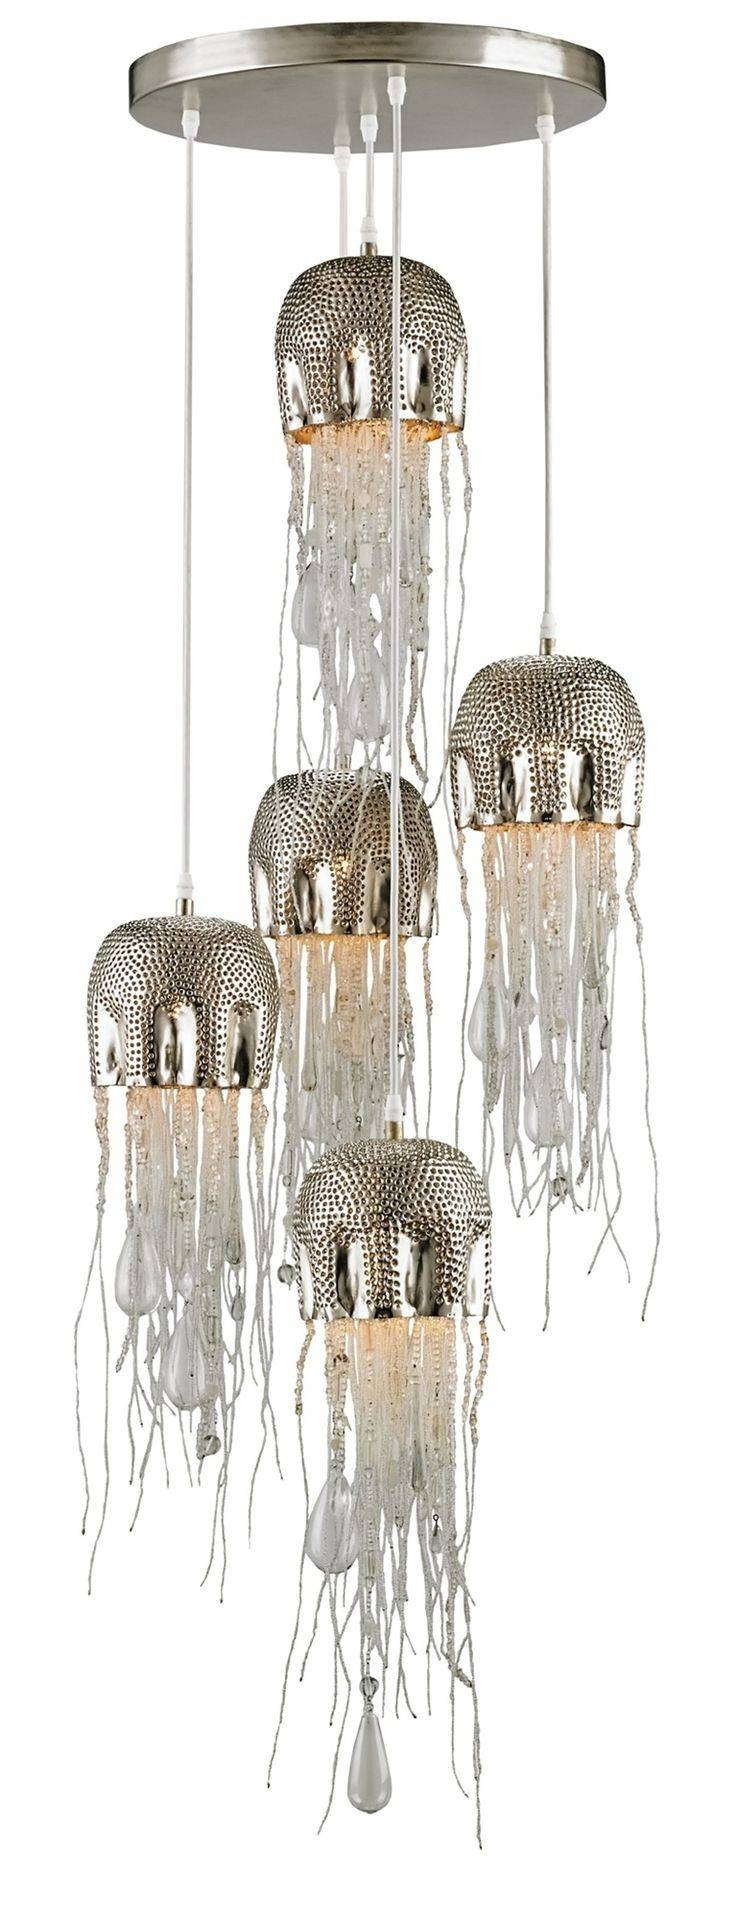 71 Best Bright Lights Images On Pinterest | Bright Lights Regarding Jellyfish Inspired Pendant Lights (Image 9 of 15)